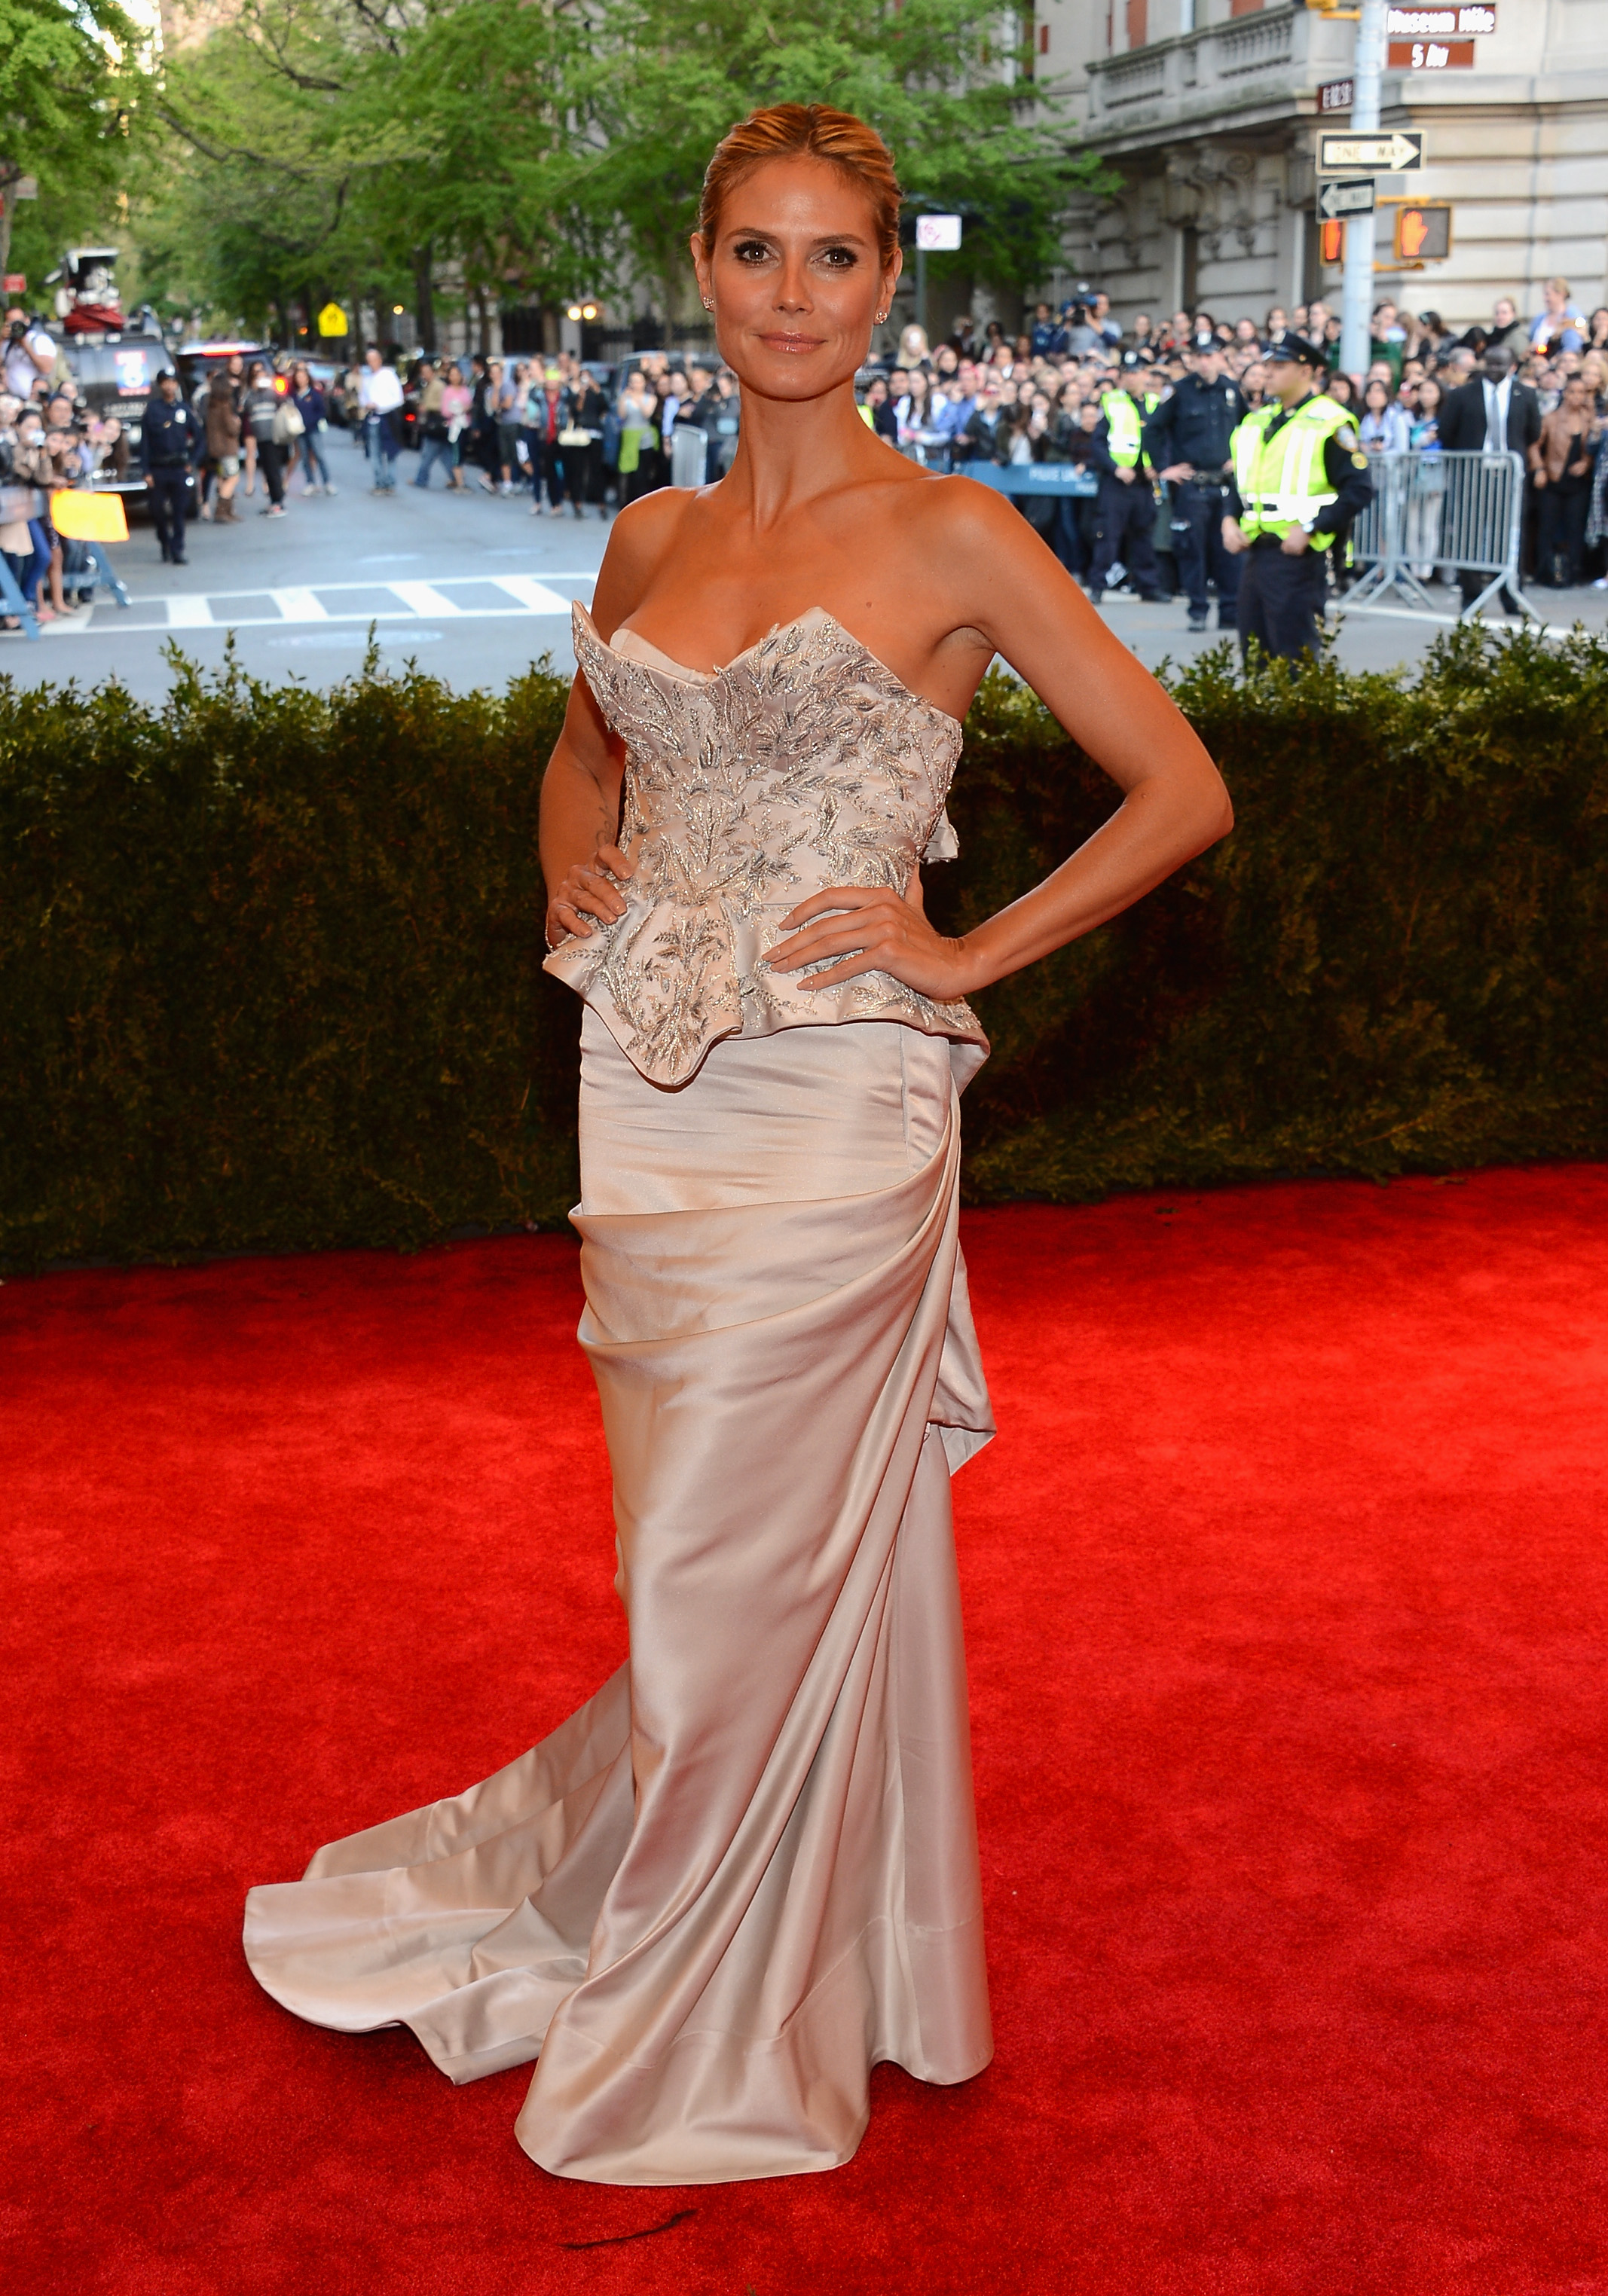 Heidi Klum at the Costume Institute Gala for the 'PUNK: Chaos to Couture' exhibition, May 6, 2013